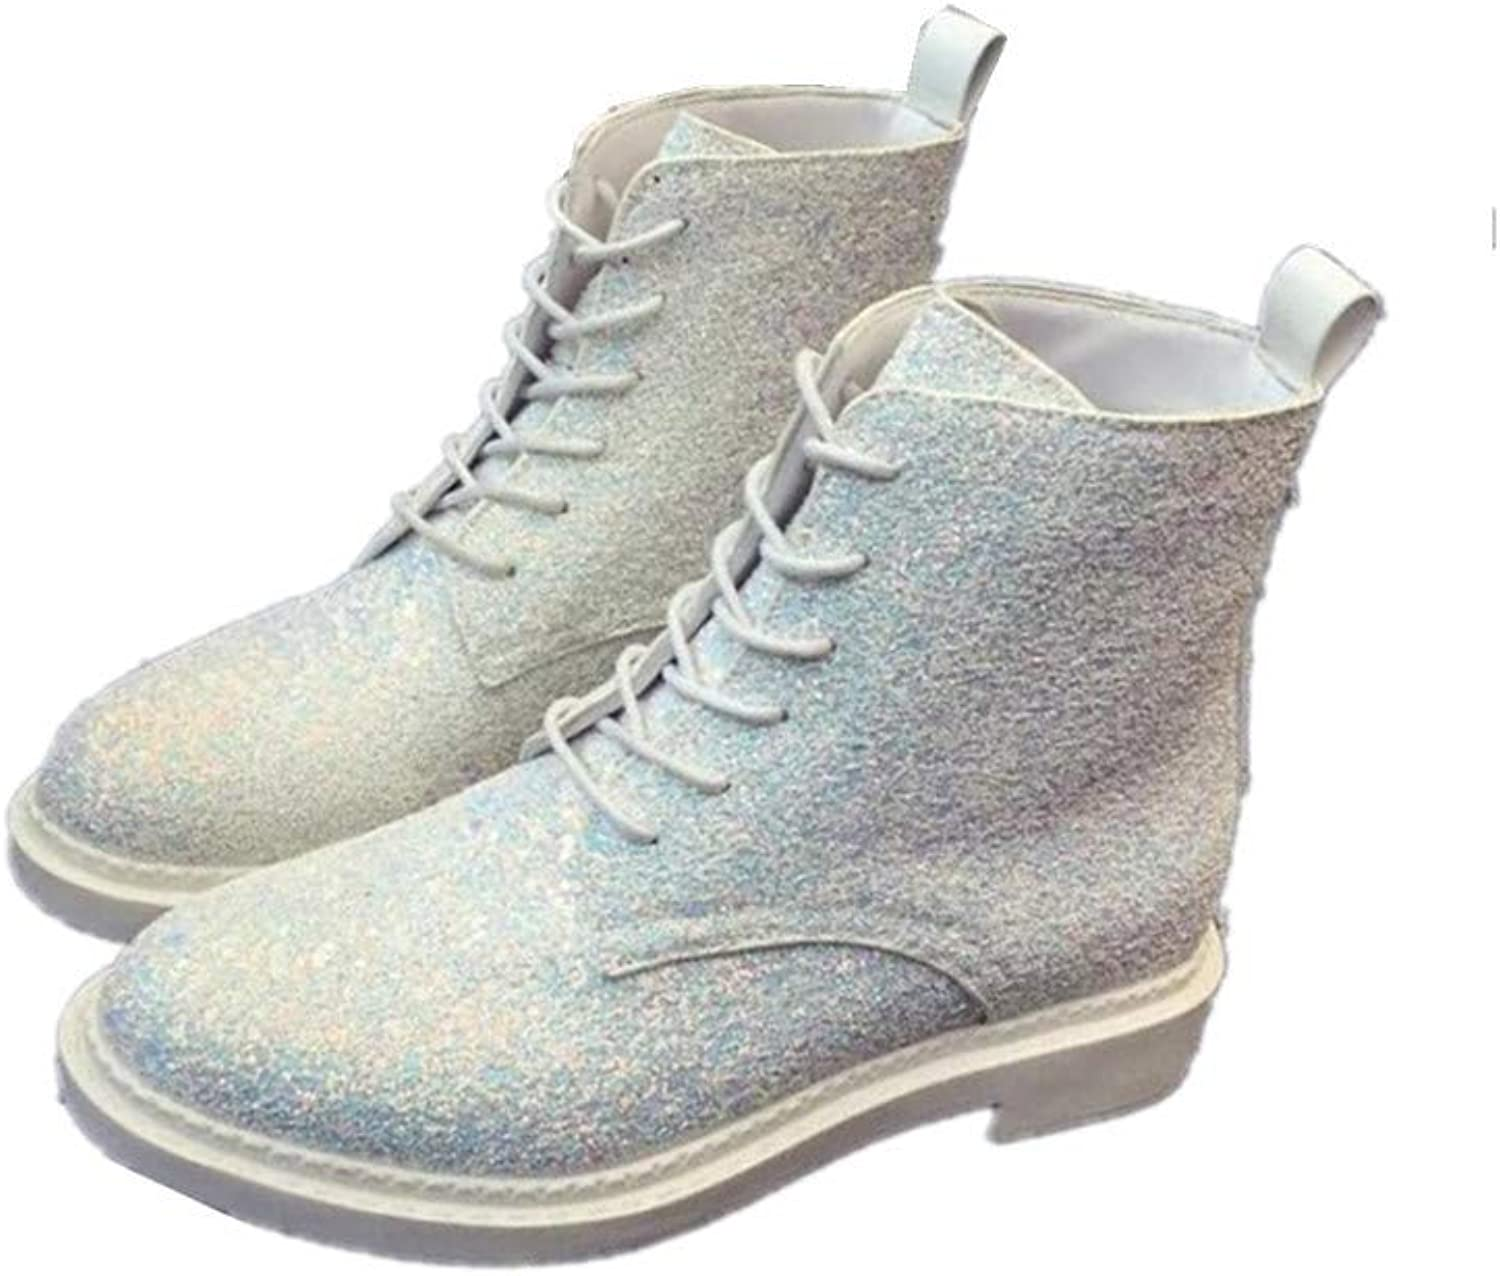 Meimeioo Women's Glitter Sequins Low Chunky Heels Lace Up Martin Ankle Boot Short Booties